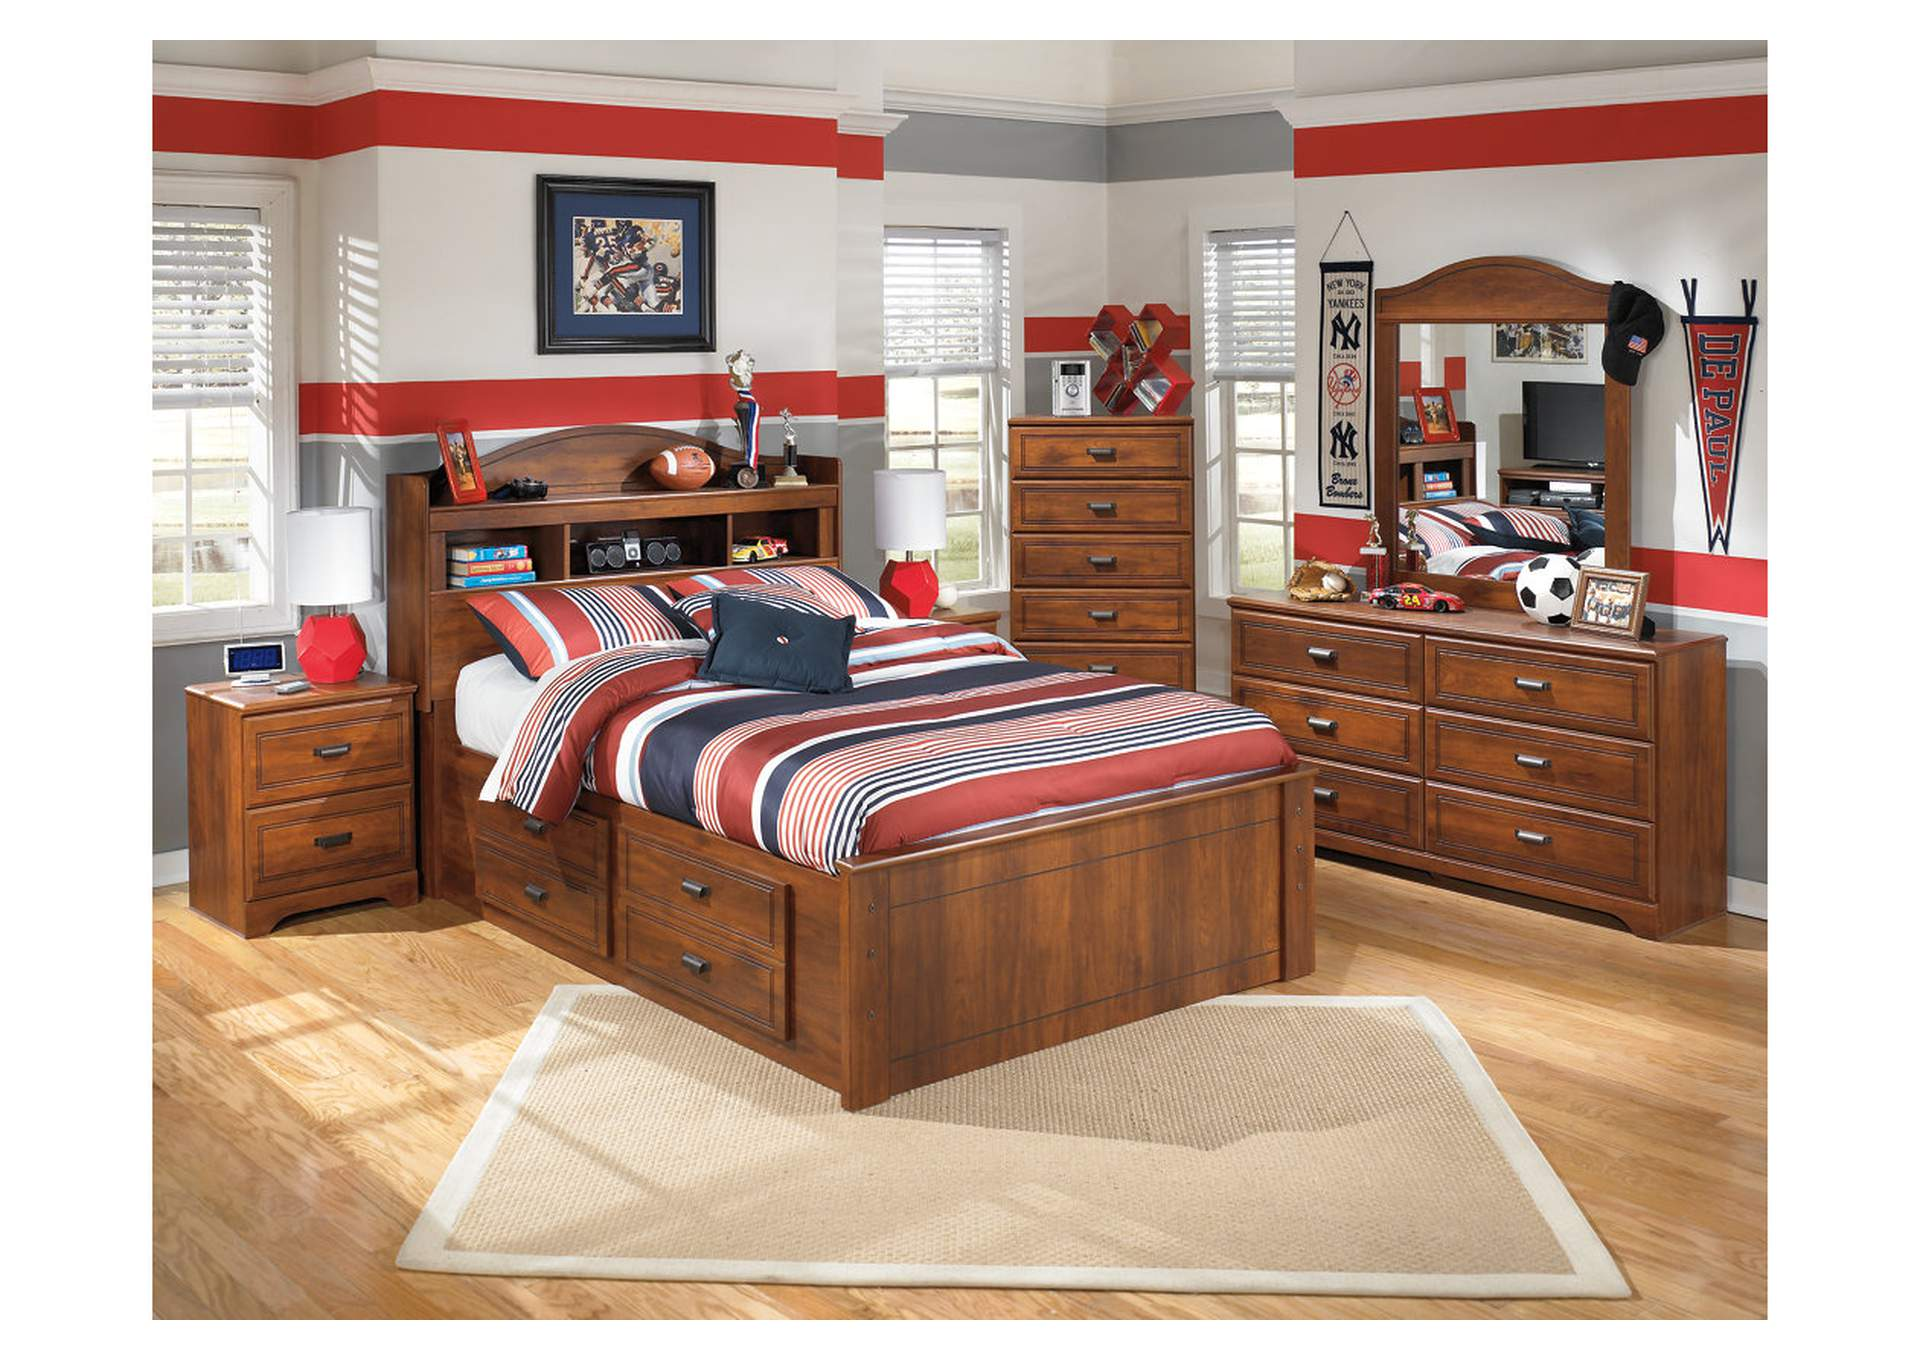 Barchan Full Bookcase Storage Bed w/Dresser & Mirror,Signature Design By Ashley